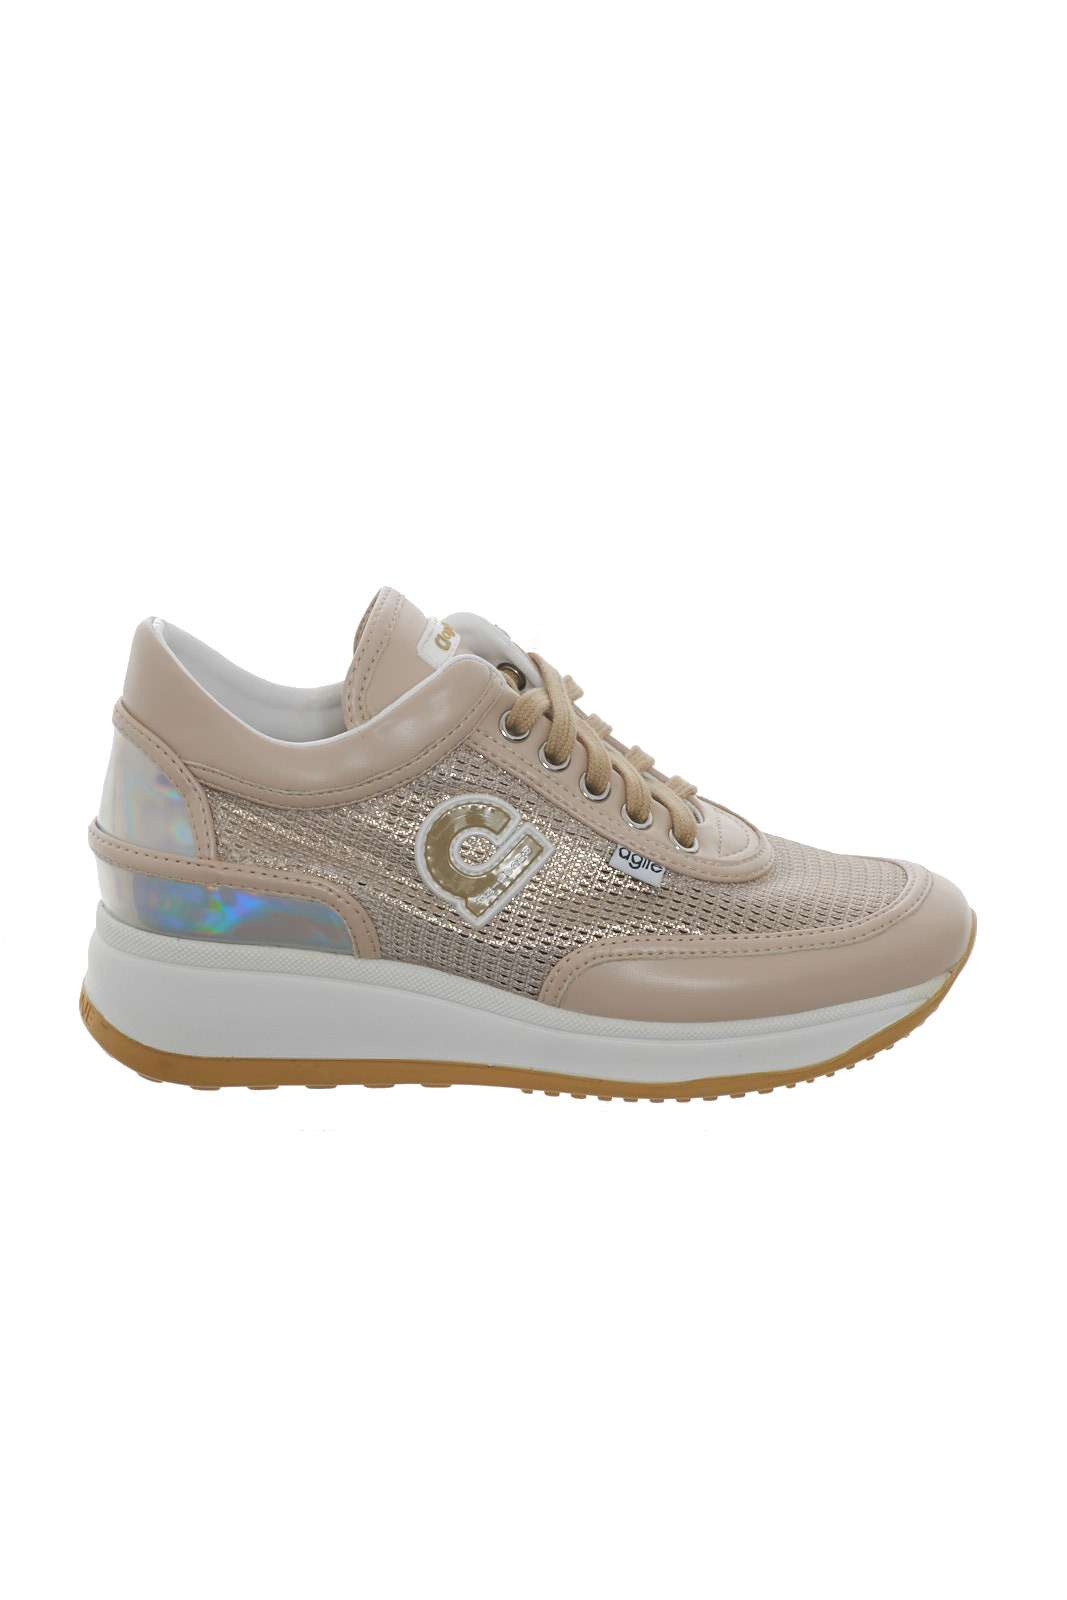 https://www.parmax.com/media/catalog/product/a/i/PE-outlet_parmax-sneaker-donna-Agile-1304-A.jpg